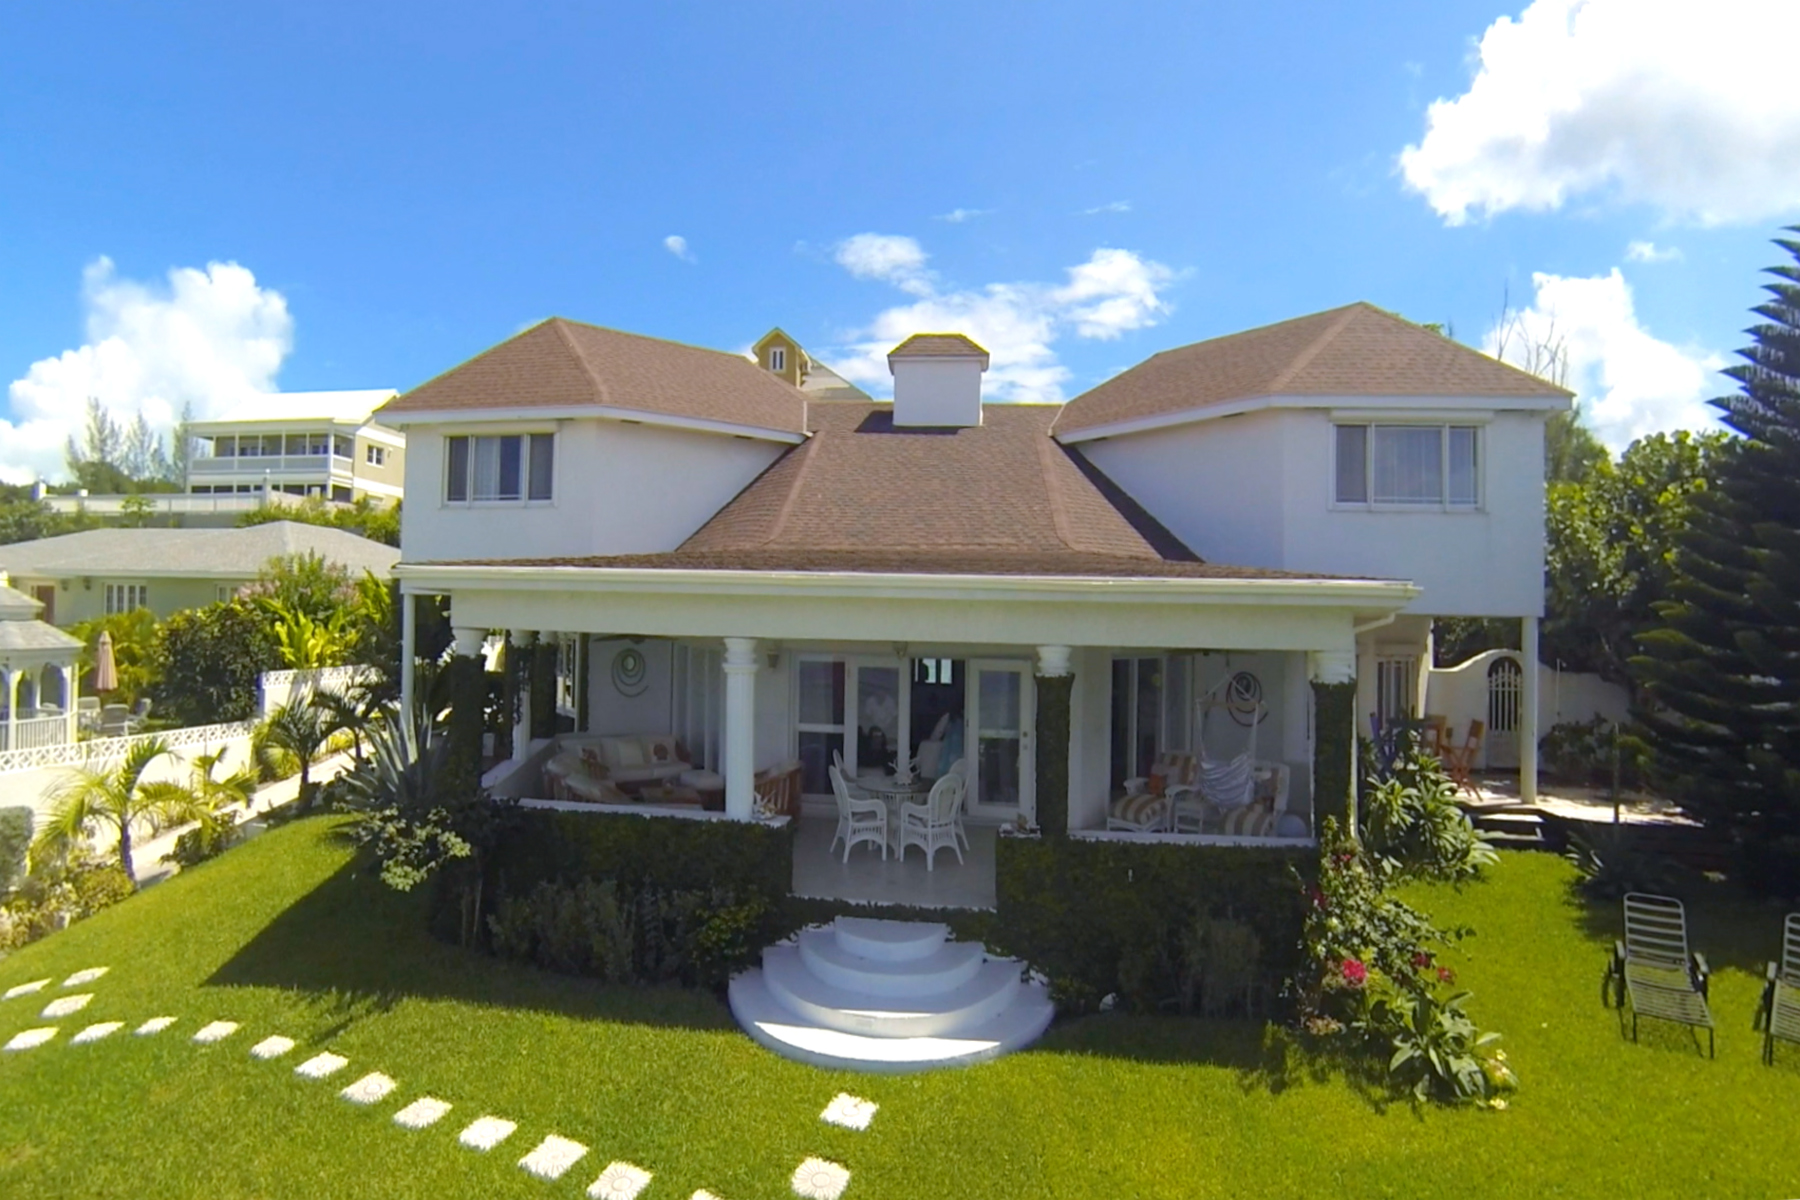 Single Family Home for Sale at West Bay Street Home Orange Hill, West Bay Street, Nassau And Paradise Island Bahamas